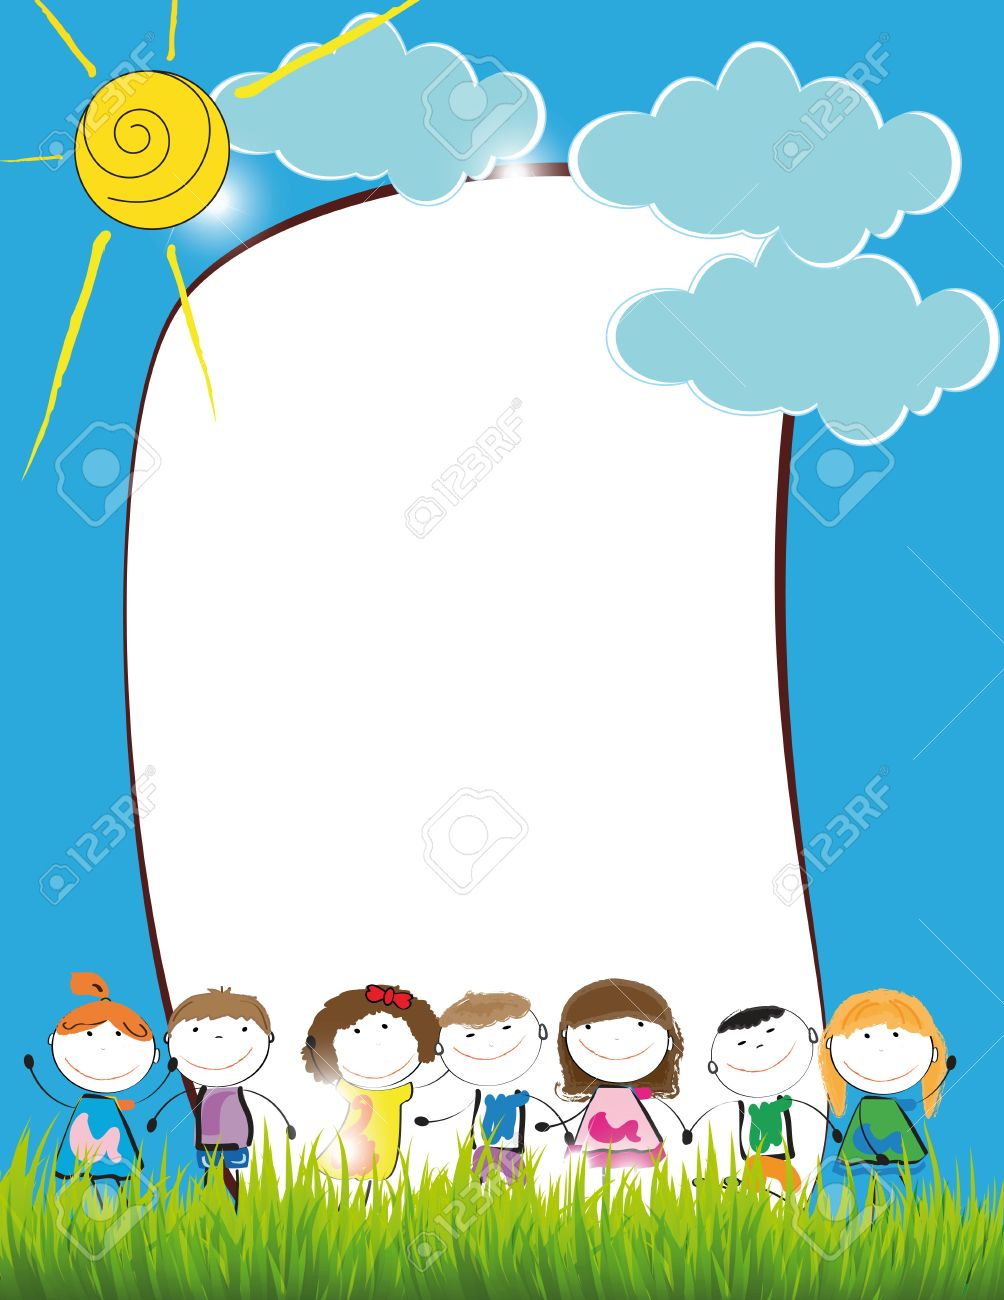 Cute Kids Frame With Happy Boys And Girls Royalty Free Cliparts ...